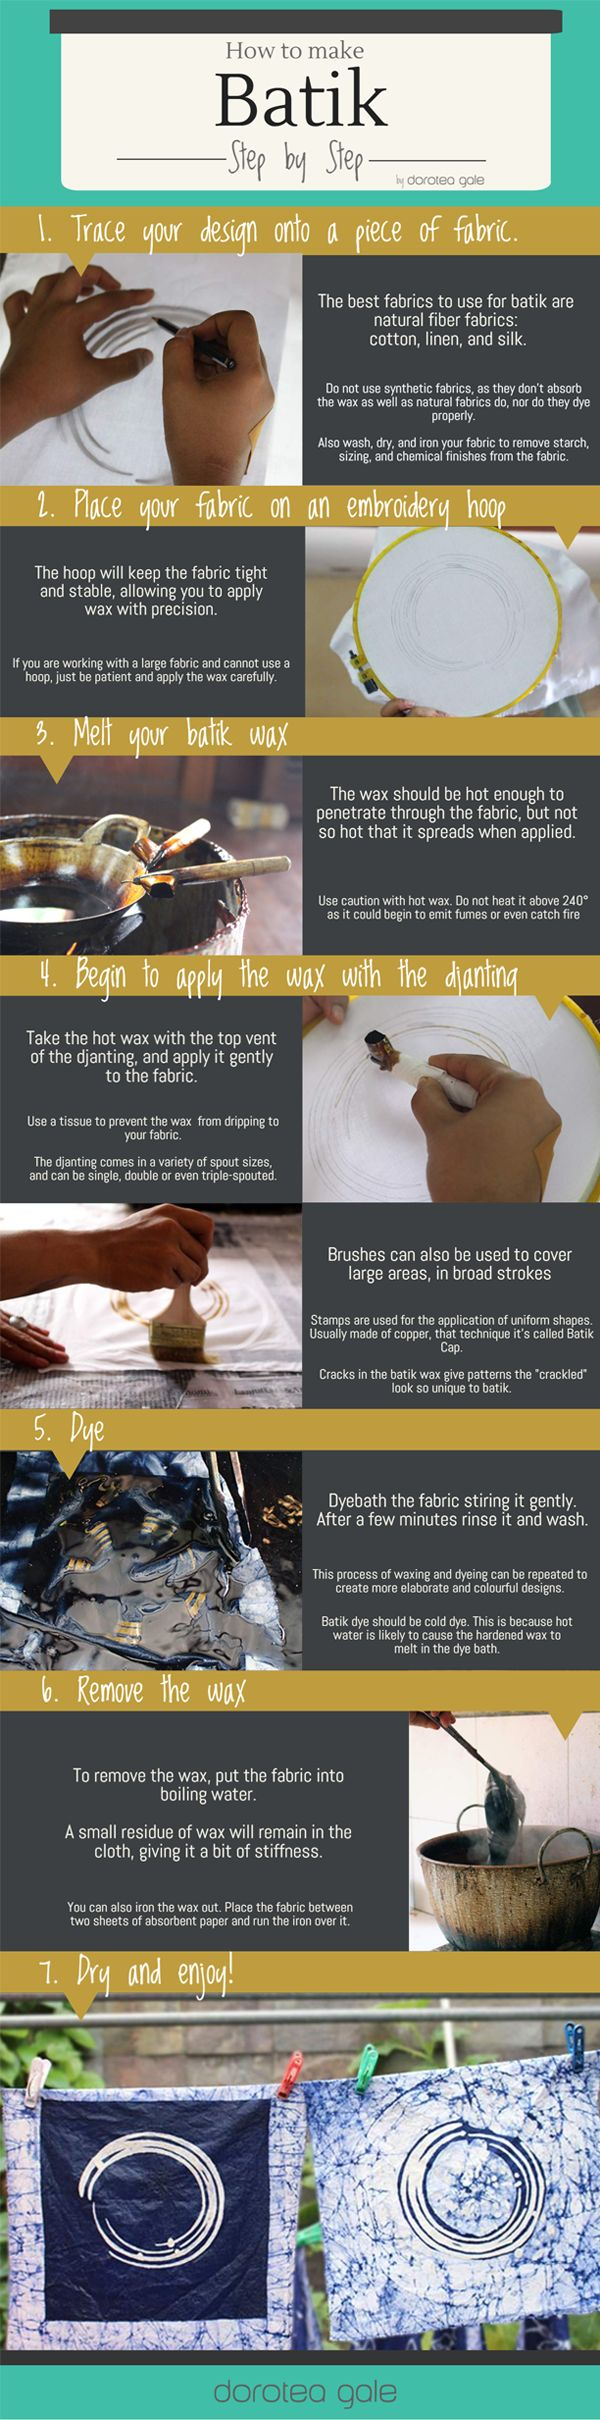 Infographic: how to make Batik step by step (technique, tips and photos)